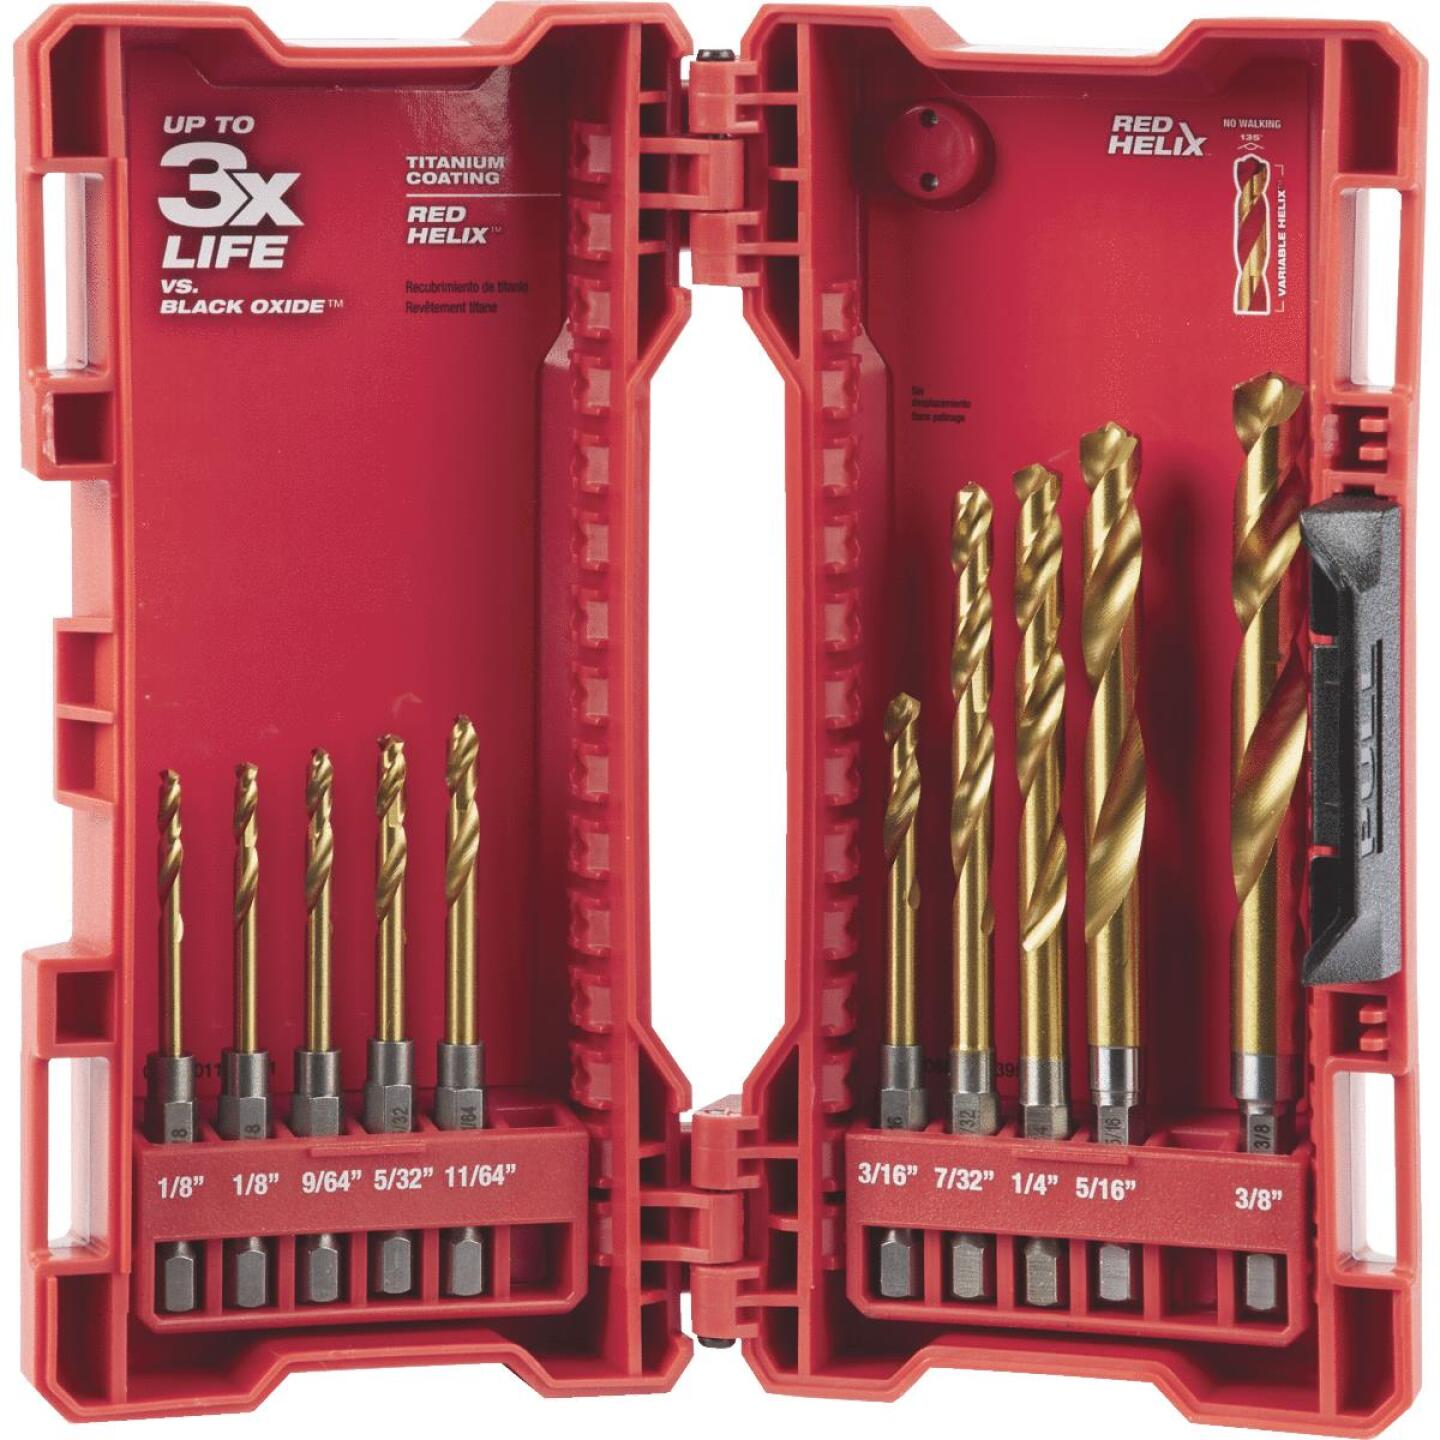 Milwaukee Shockwave 10-Piece Impact Duty Titanium Hex Shank Drill Bit Set, 1/8 In. thru 3/8 In. Image 1